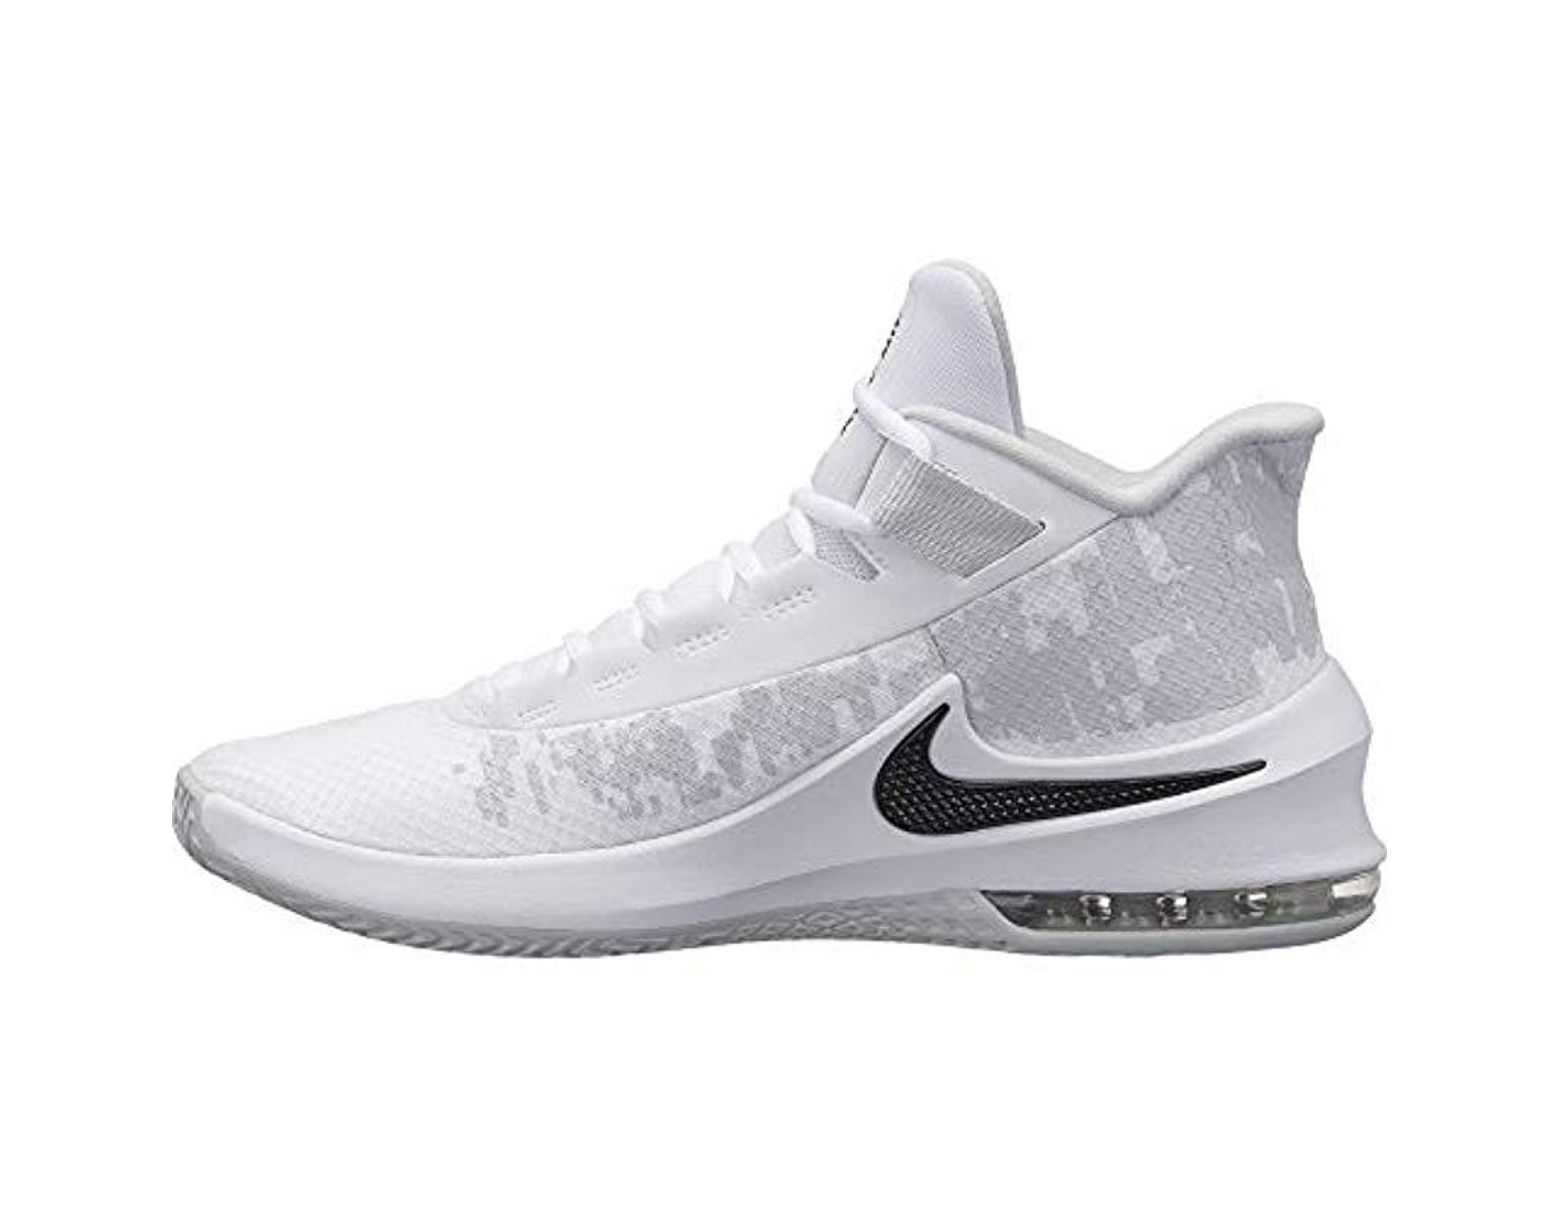 500b362c9fc46 Nike Air Max Infuriate 2 Mid Fitness Shoes in White for Men - Lyst